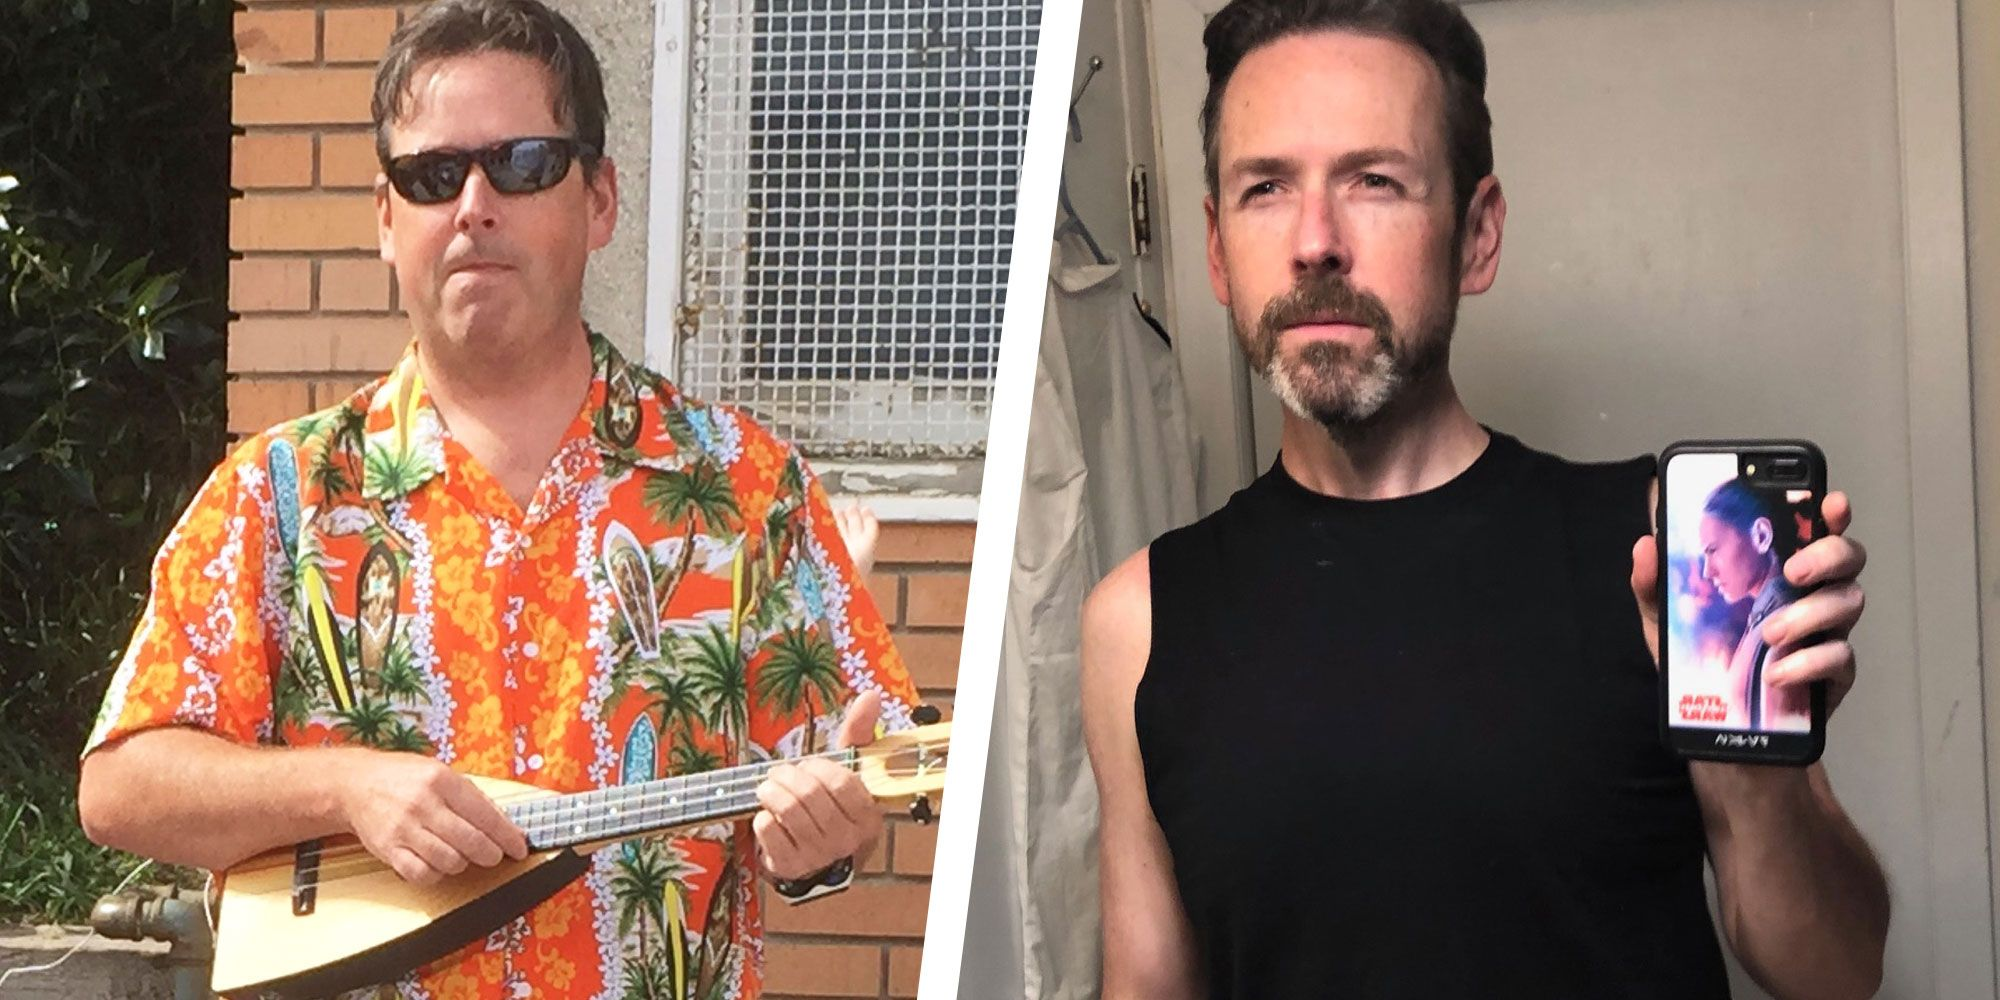 A Few Easy Diet Tweaks Helped This Guy Lose 75 Pounds—and His Dad Bod